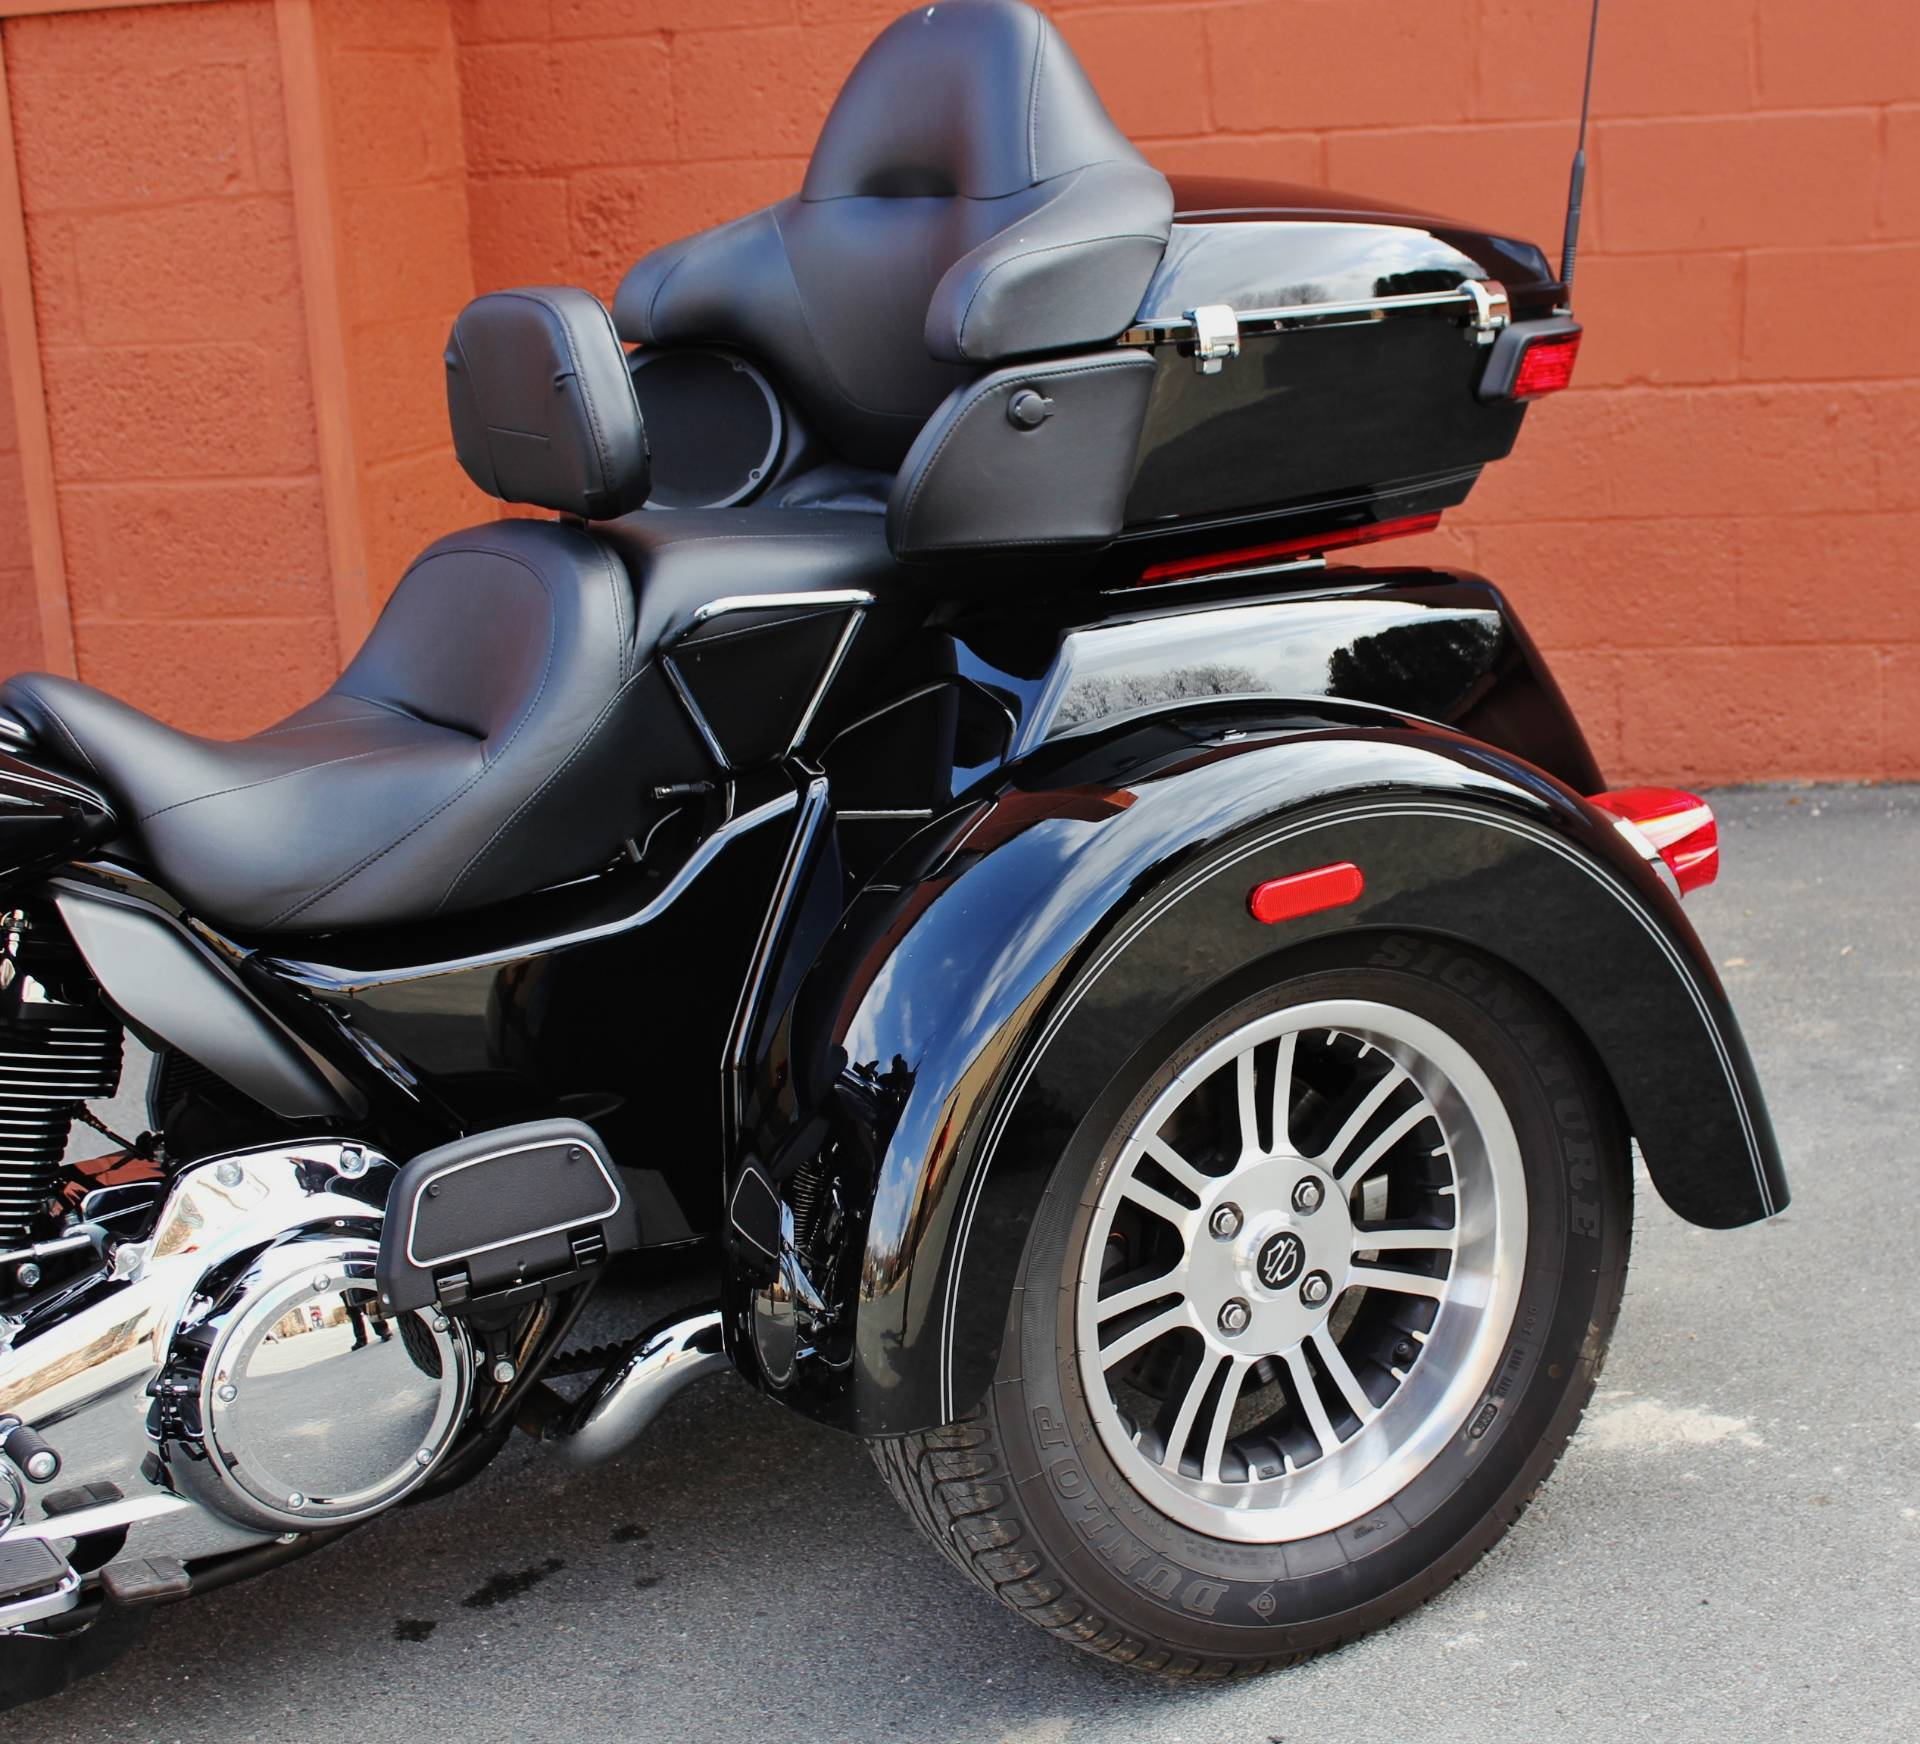 used 2017 harley davidson tri glide ultra trikes in pittsfield ma stock number 855748. Black Bedroom Furniture Sets. Home Design Ideas